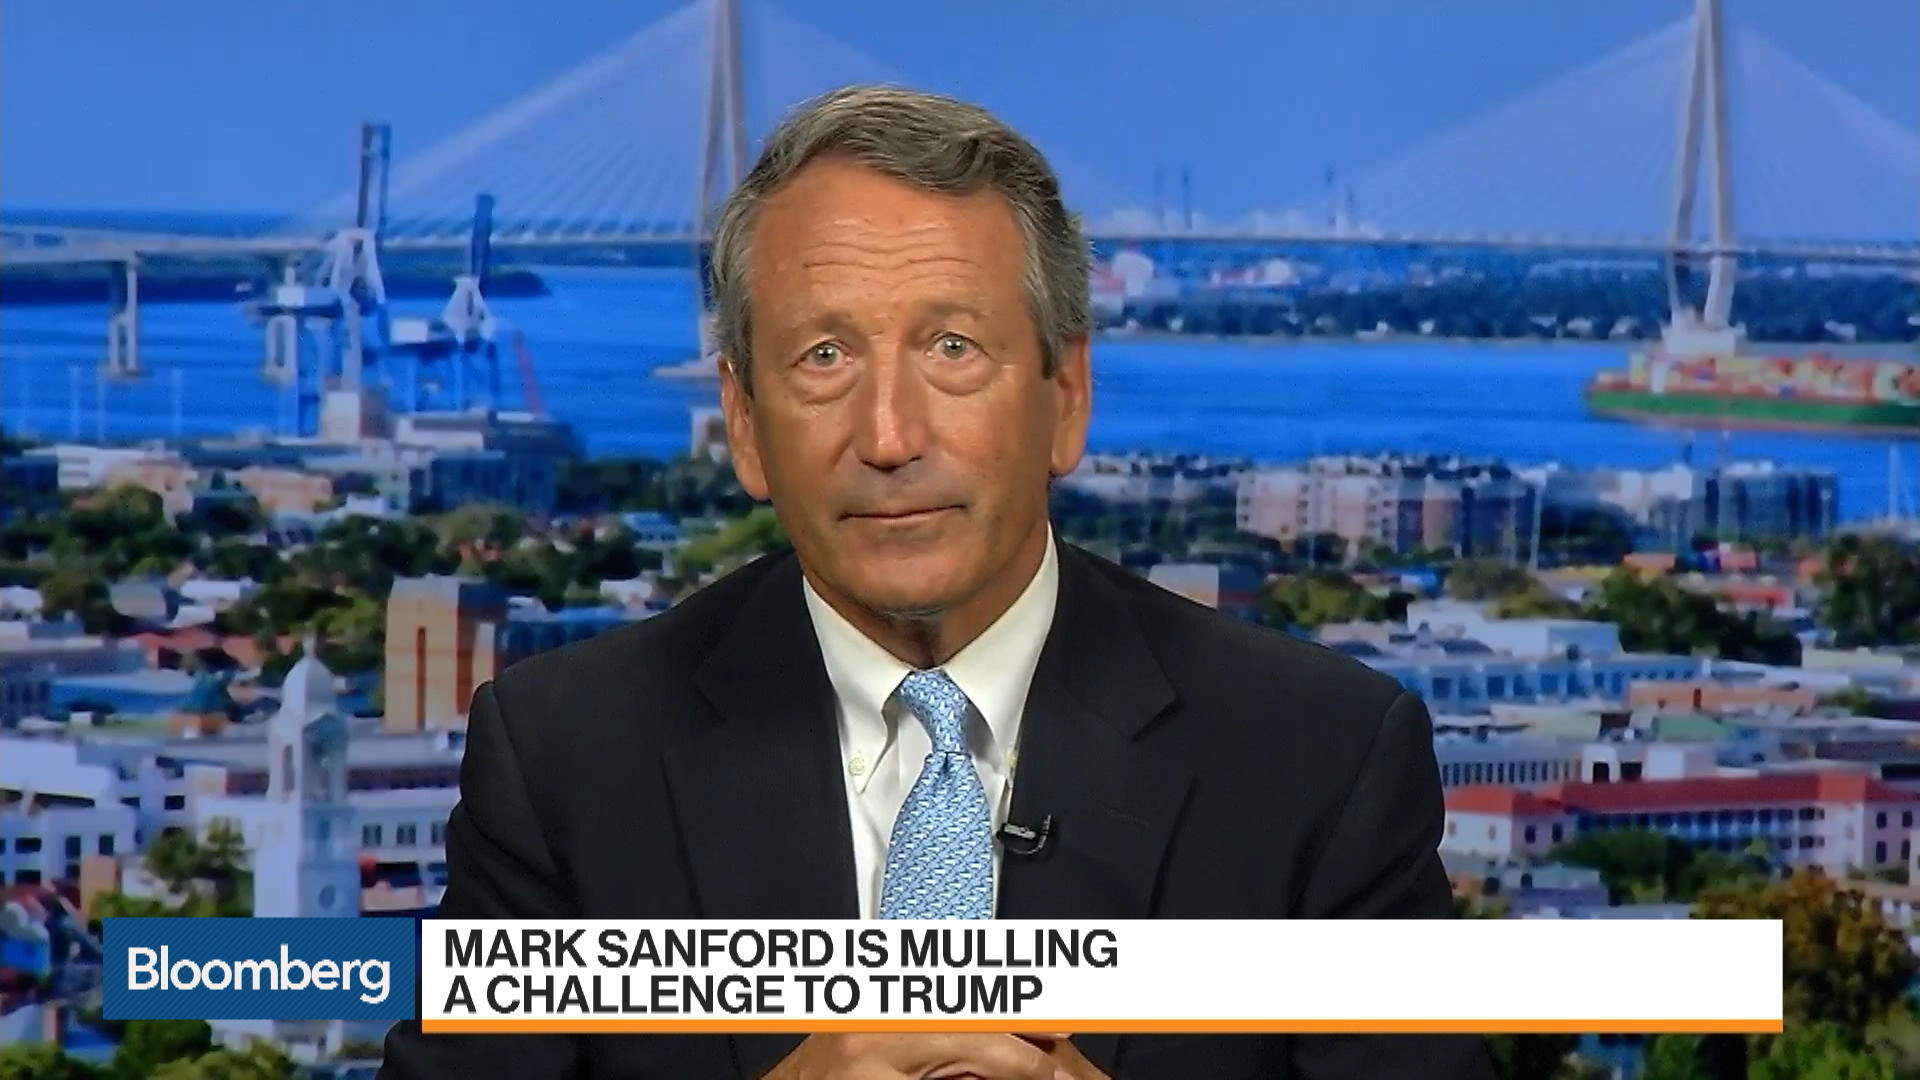 Mark Sanford Mulls Challenge to Trump, Admits Winning in 2020 Is a Long Shot